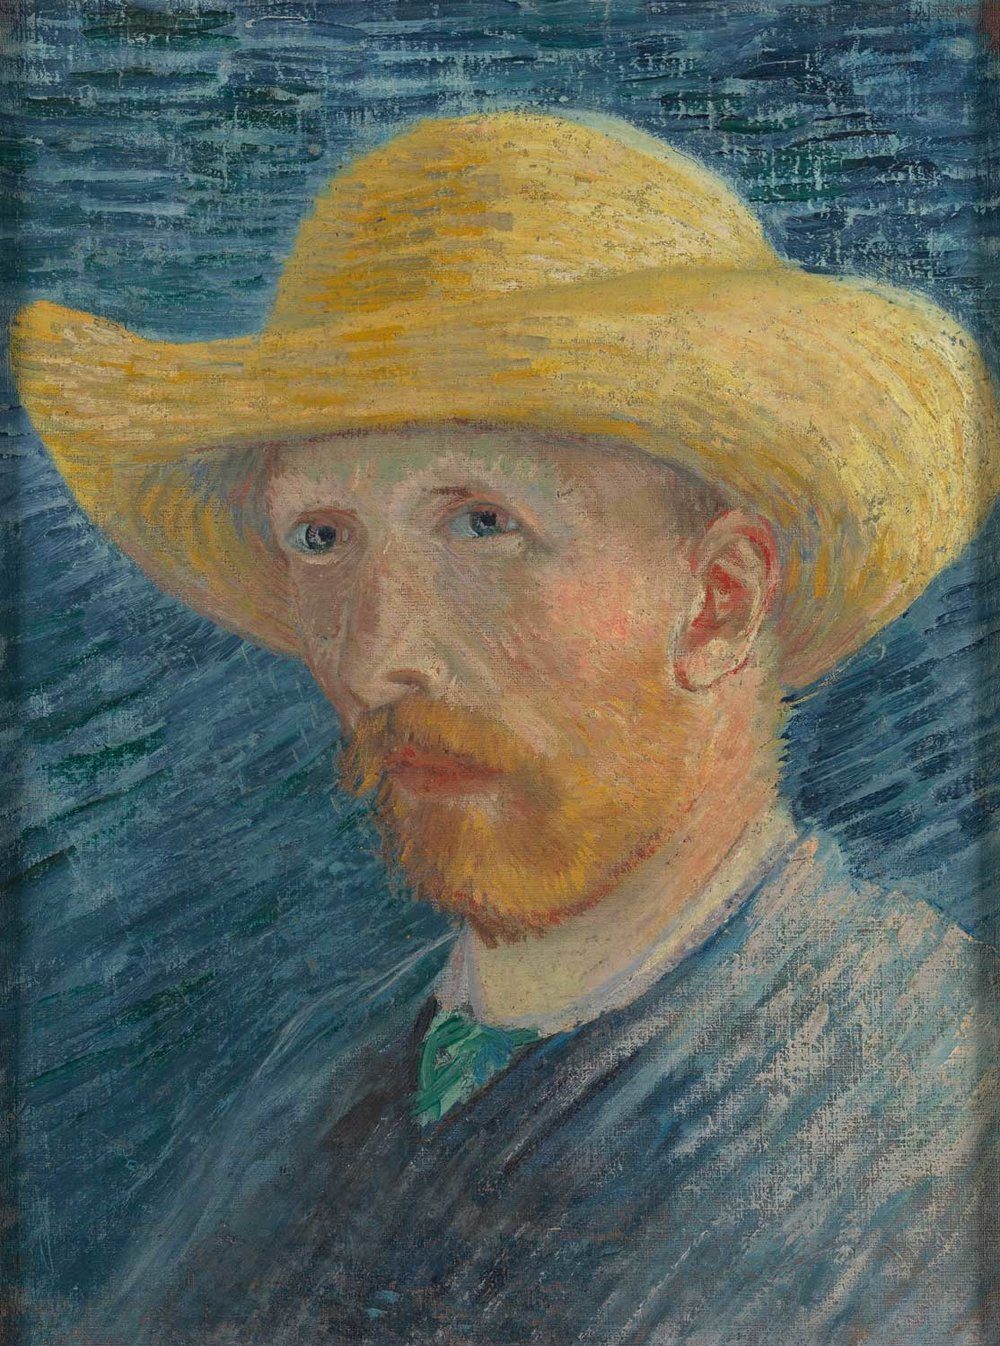 SelfPortraitWithStrawHat-1500x1114-WEB-vangoghmuseum-s0060V1962v-3840.jpg